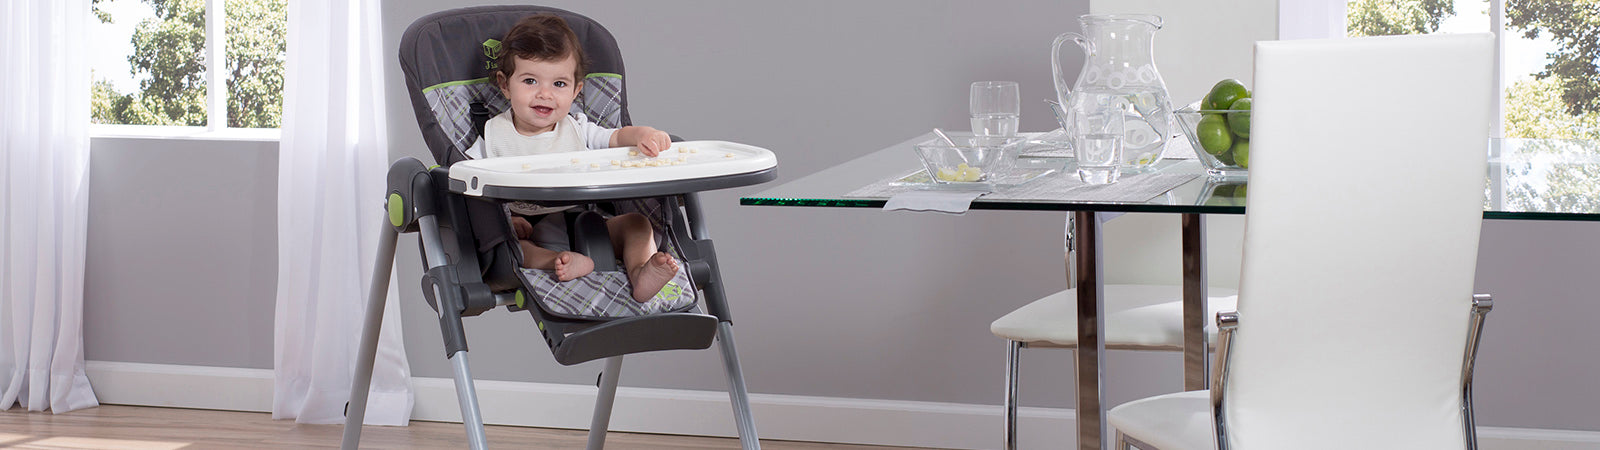 High Chairs for Infants and Toddlers Delta Children